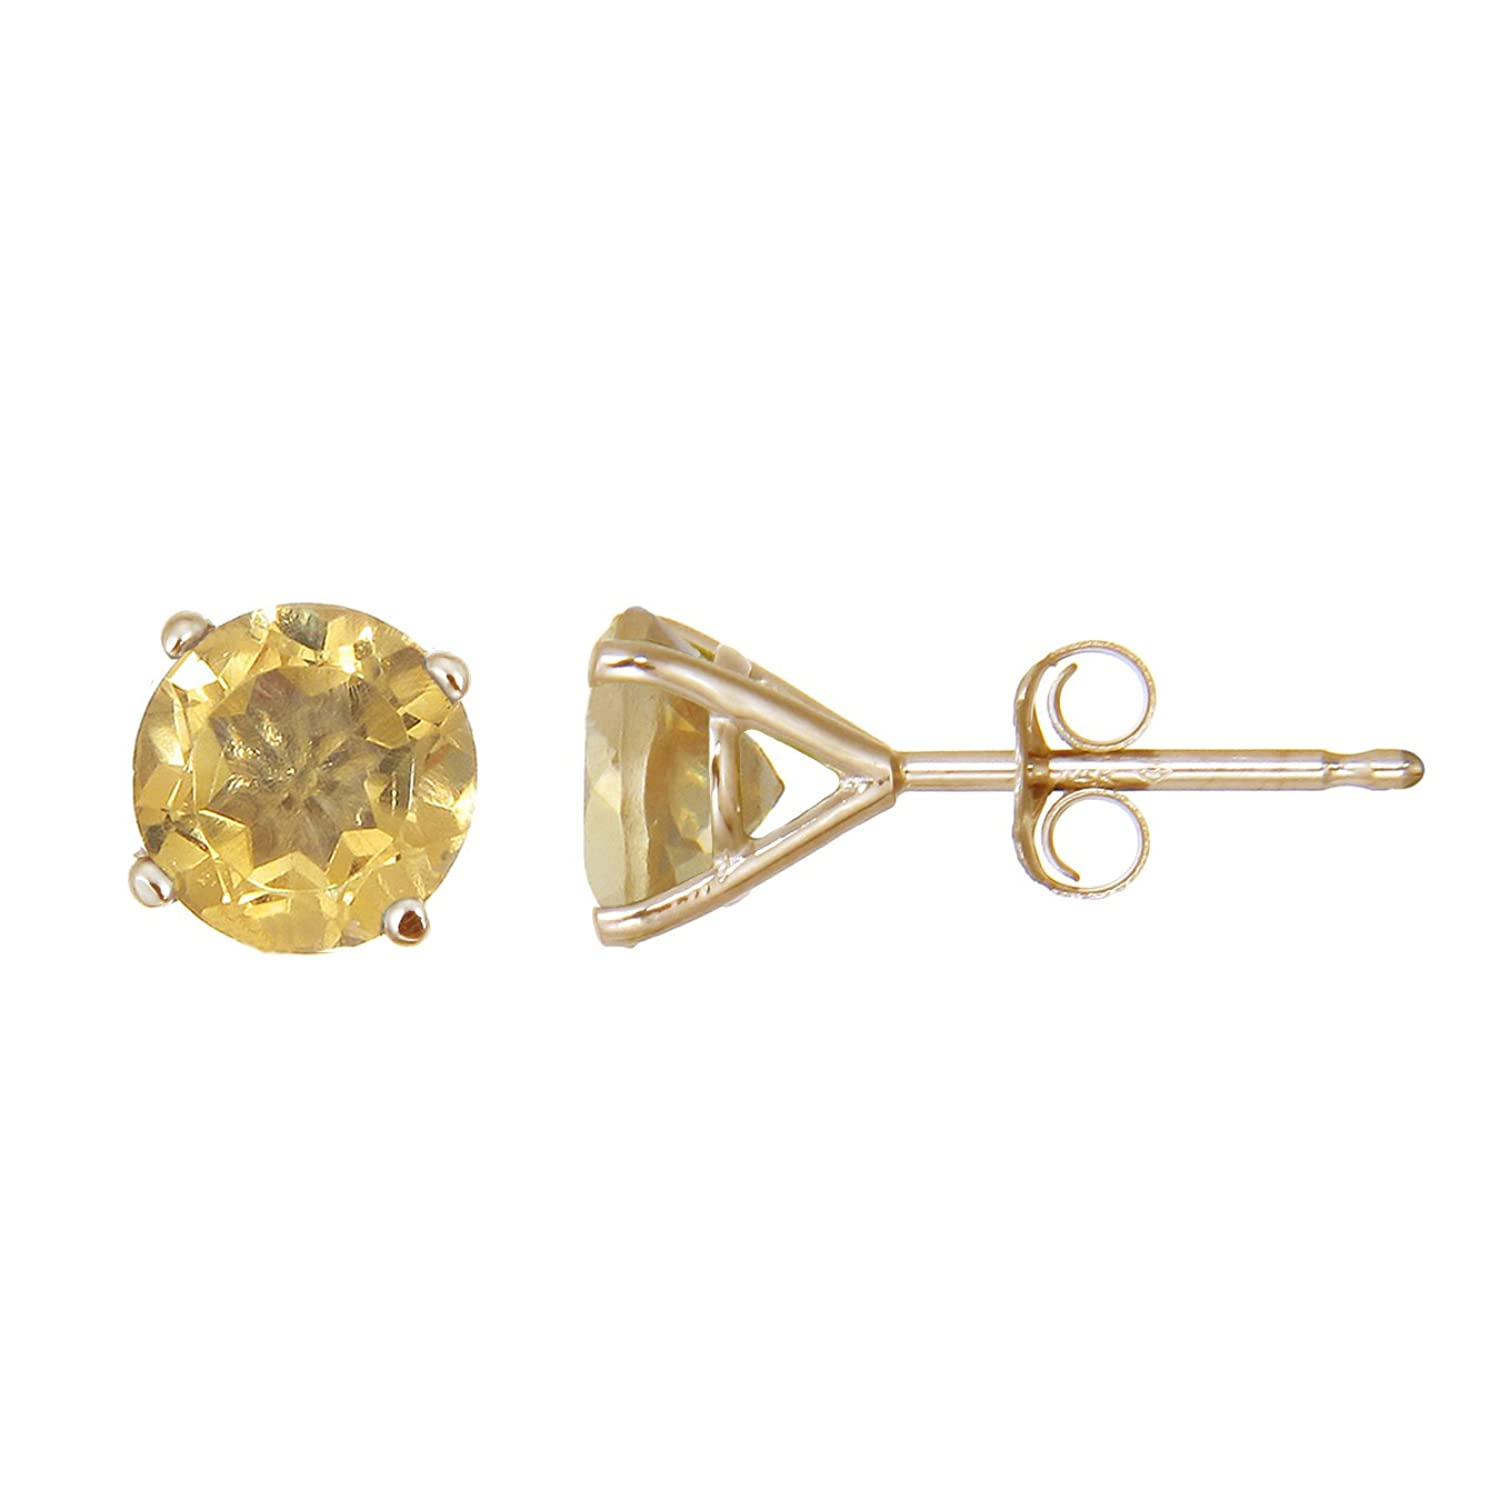 p lrg november citrine earrings silver birthstone pandora stud